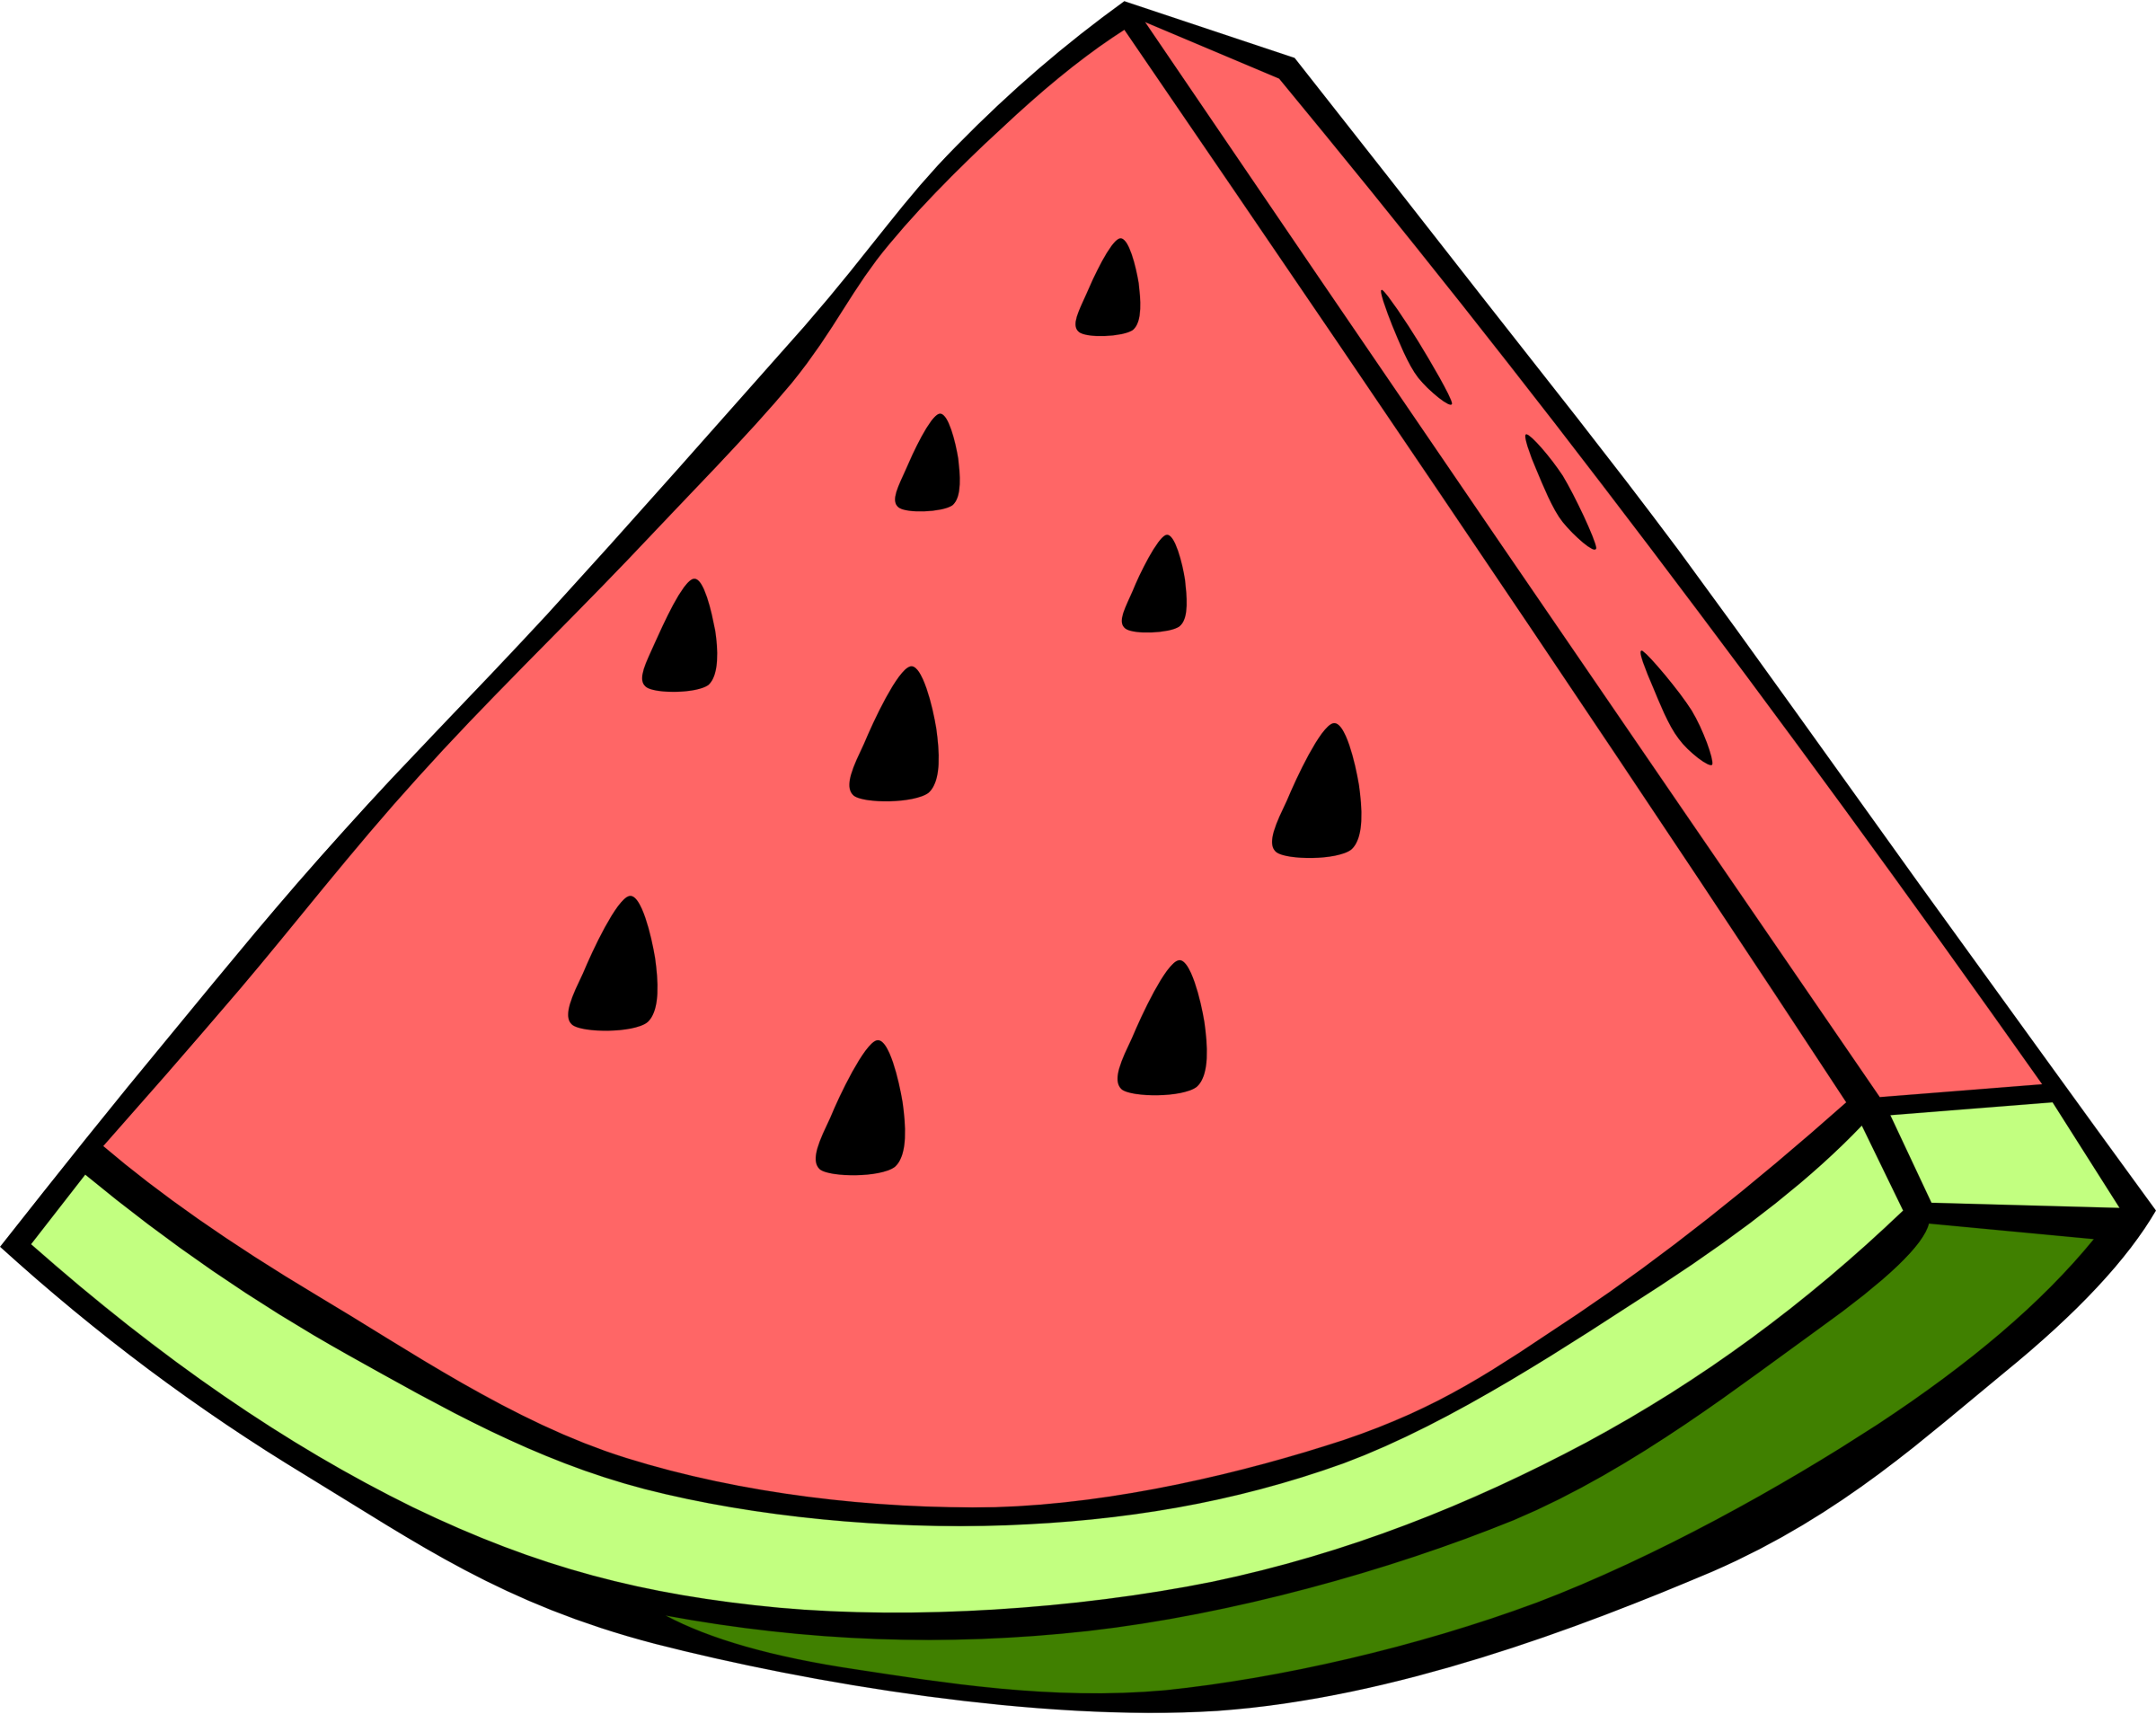 Simple fruit watermelon by. Egg clipart slice